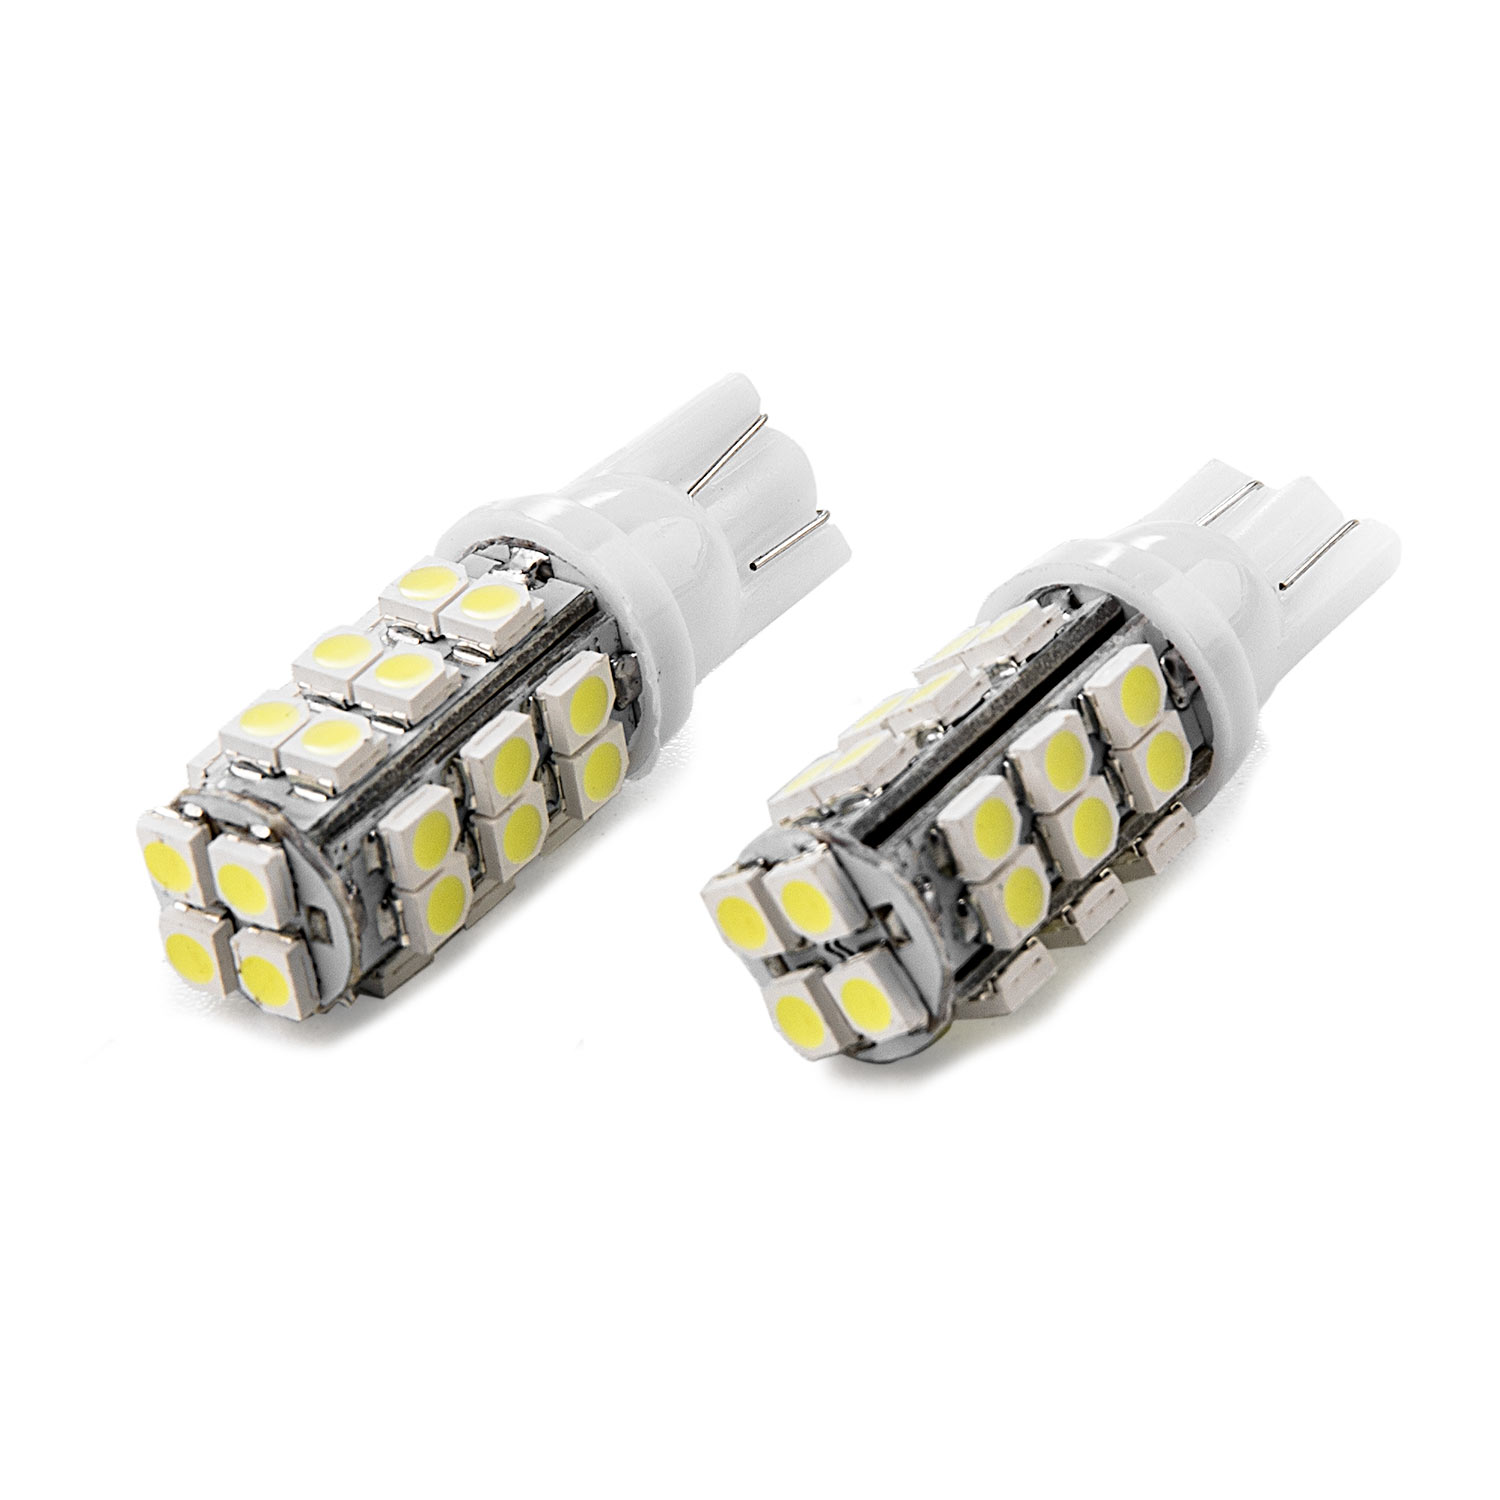 NEW 2x 168 194 T10 6000K LED Replacement Light Bulbs for 2004-2013 Infiniti QX56